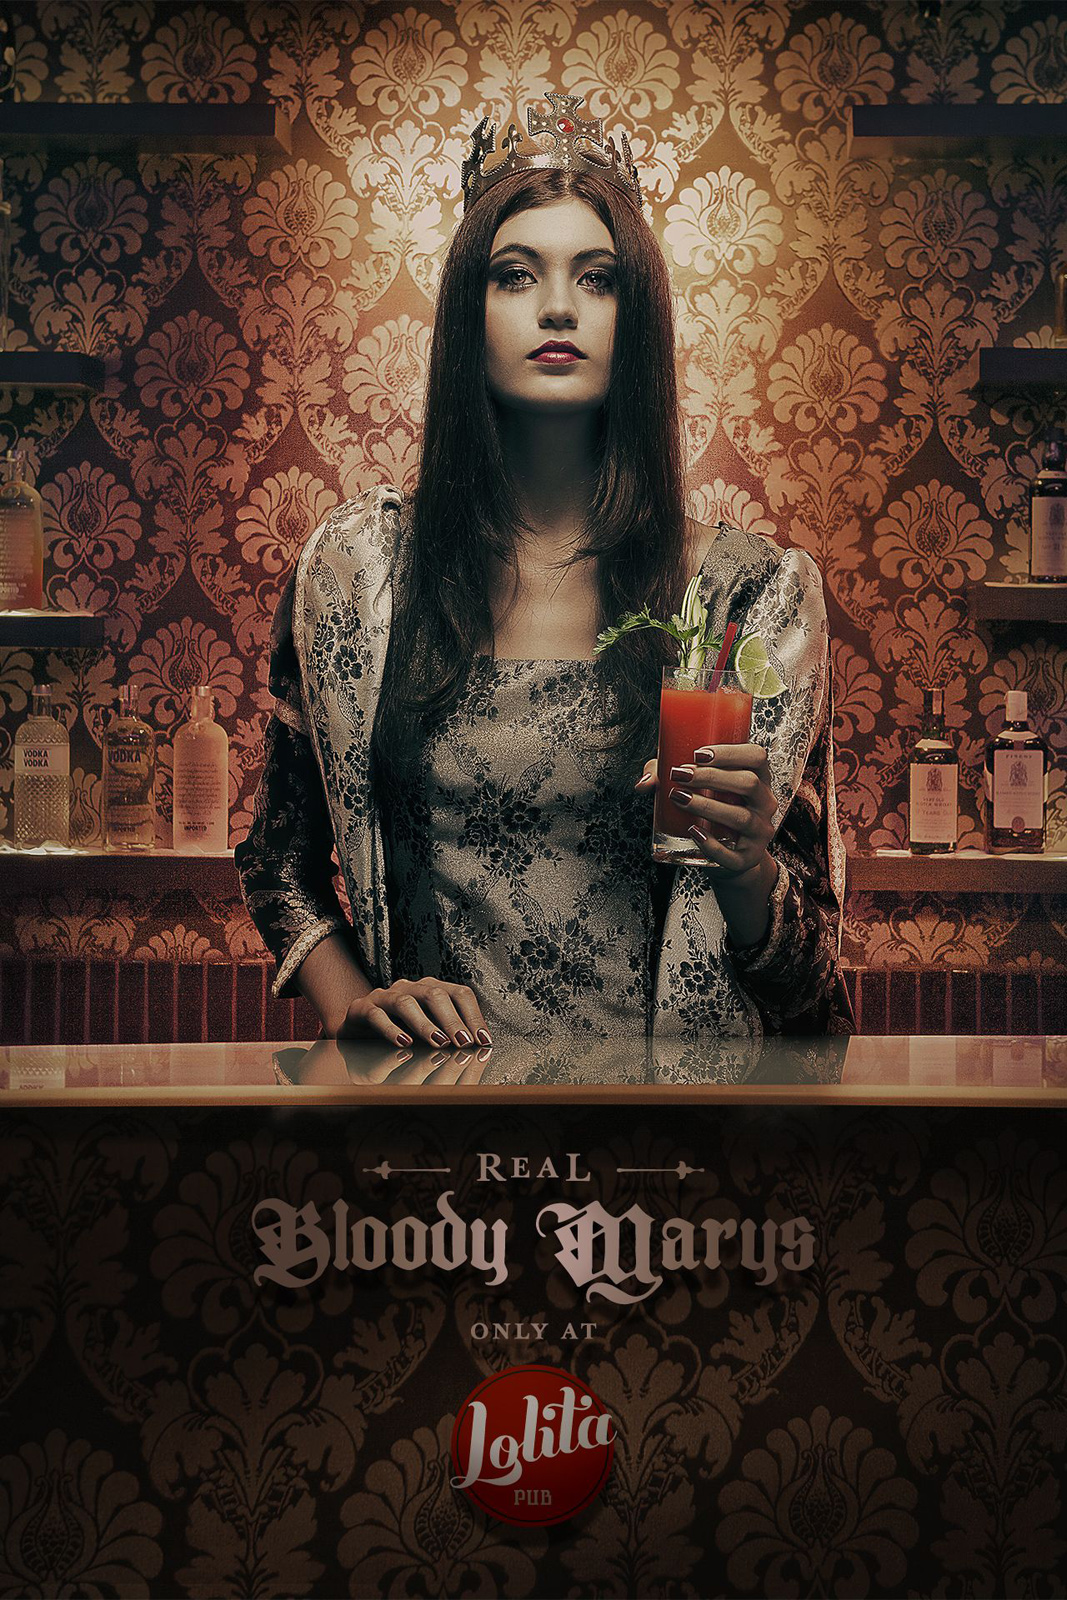 how to call bloody mary in real